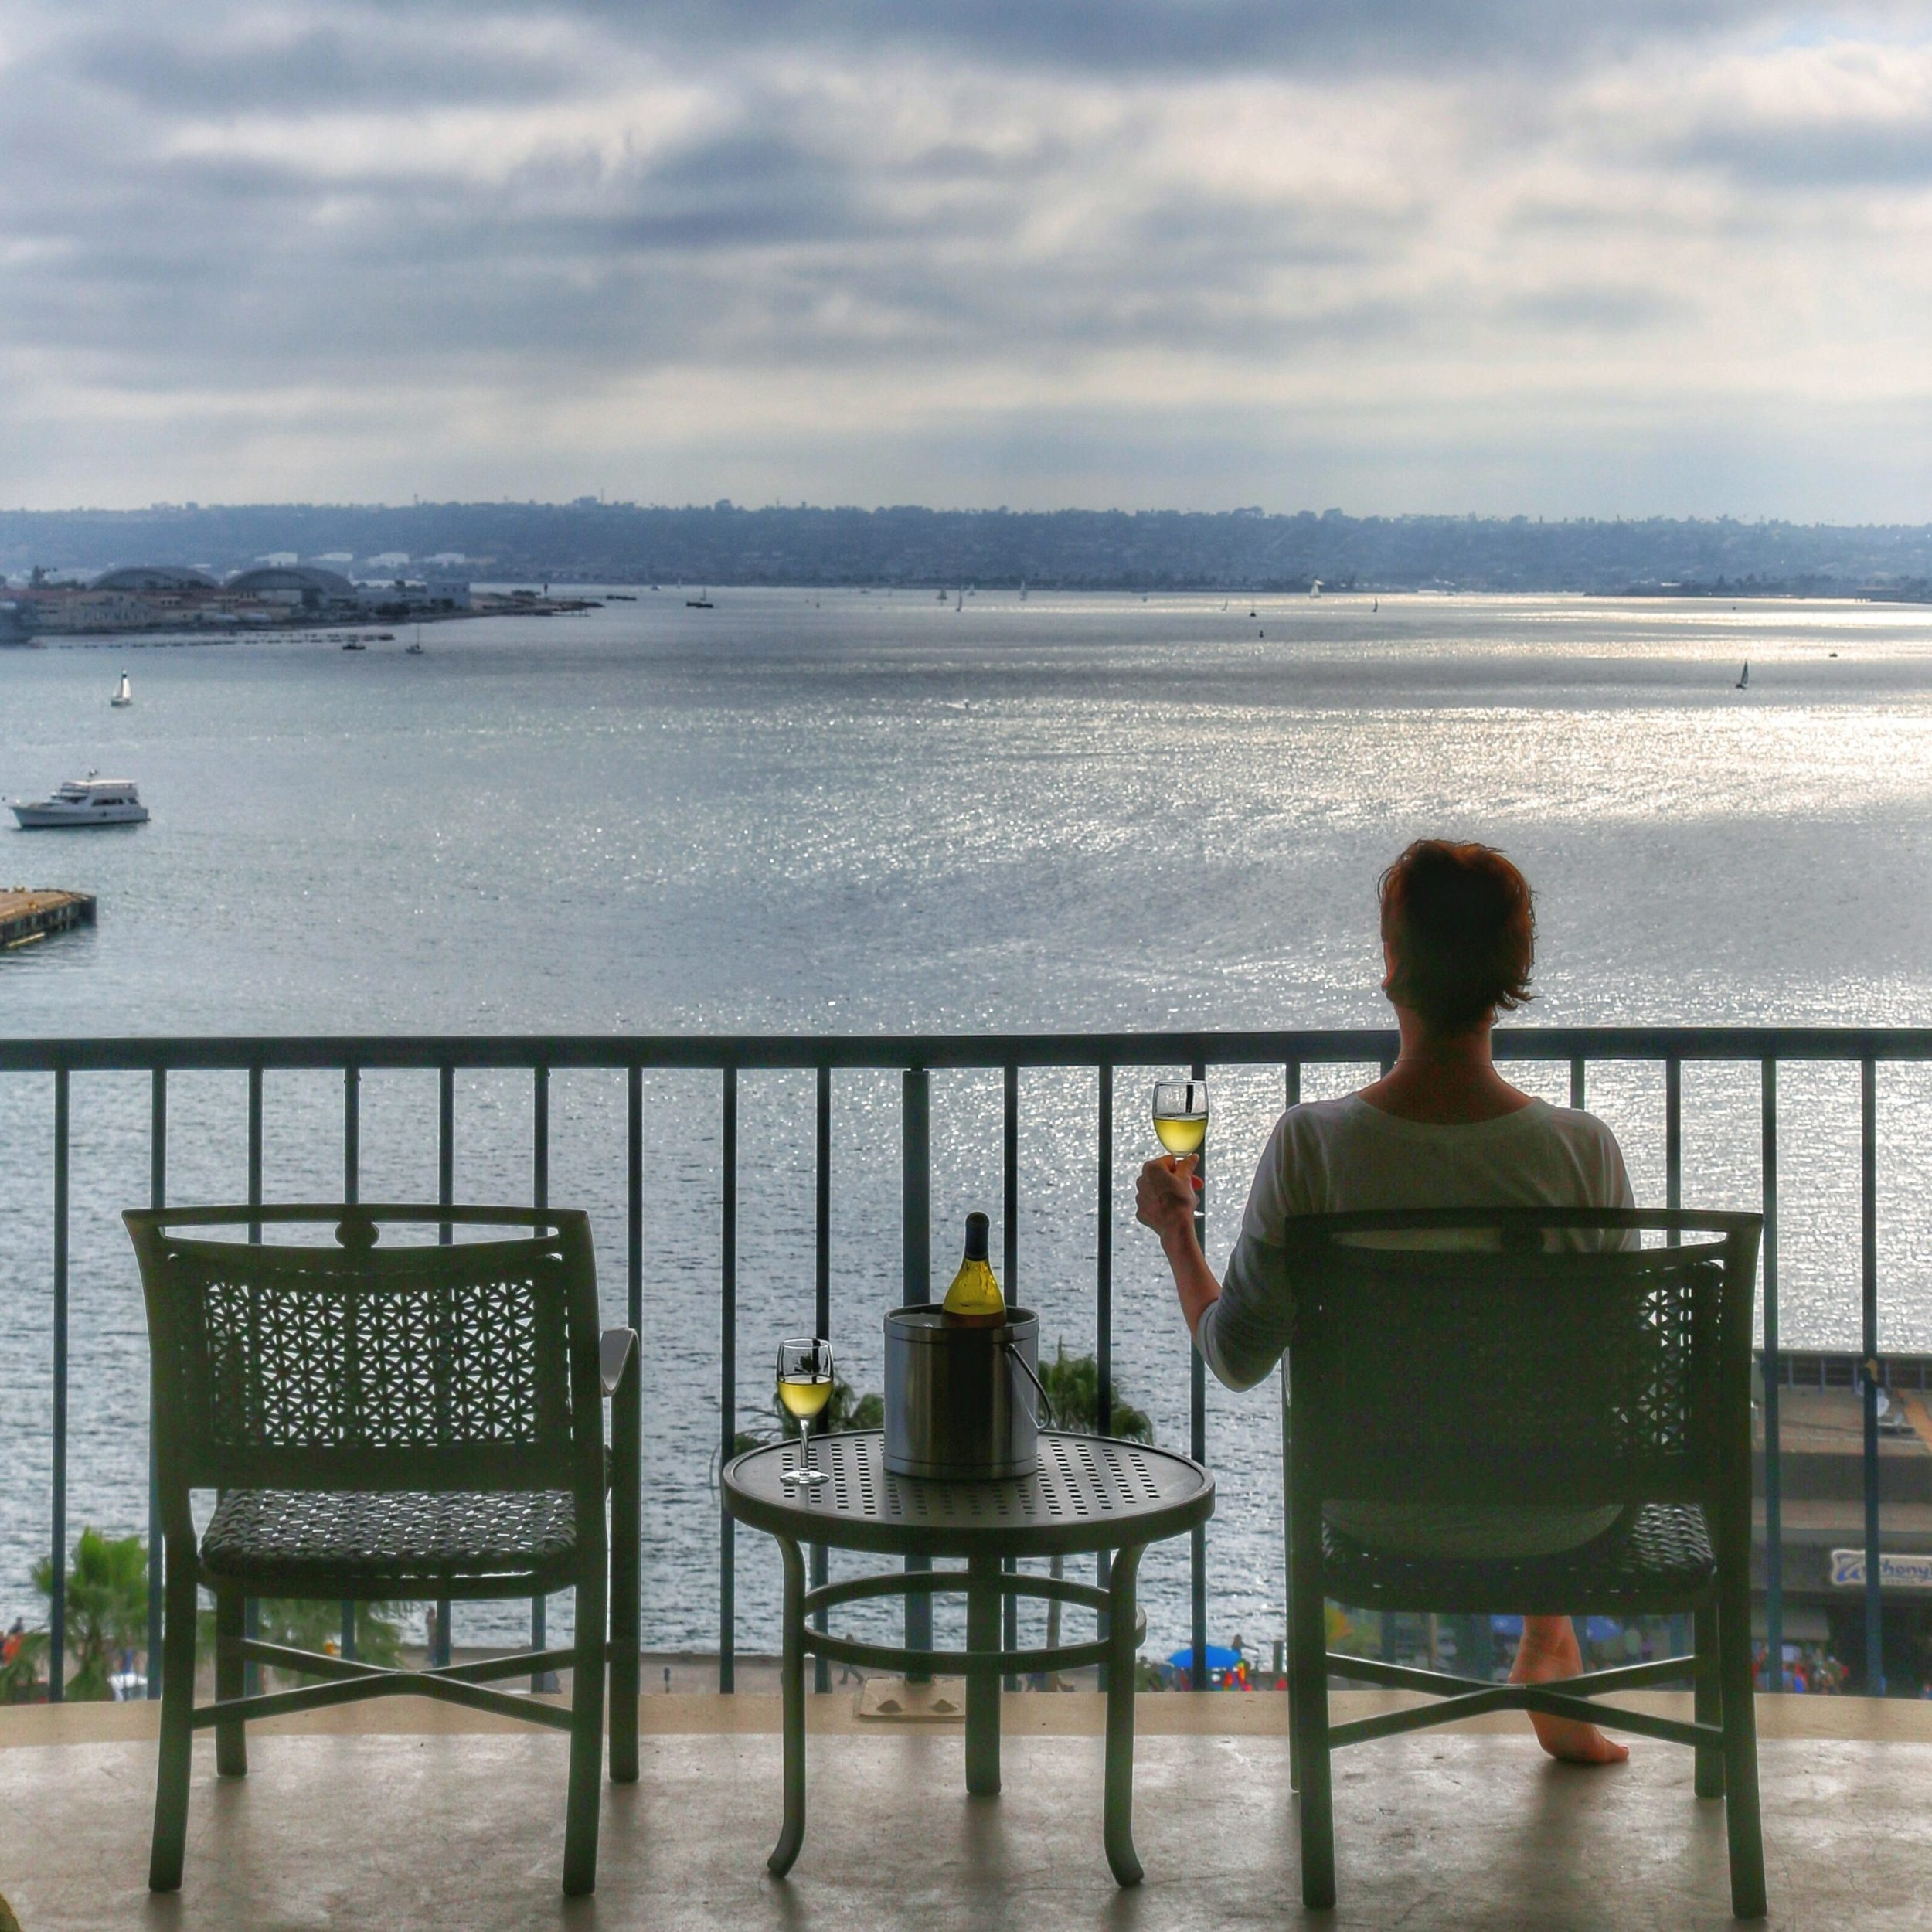 Sunset on the balcony overlooking the water at Wyndham San Diego Bayside